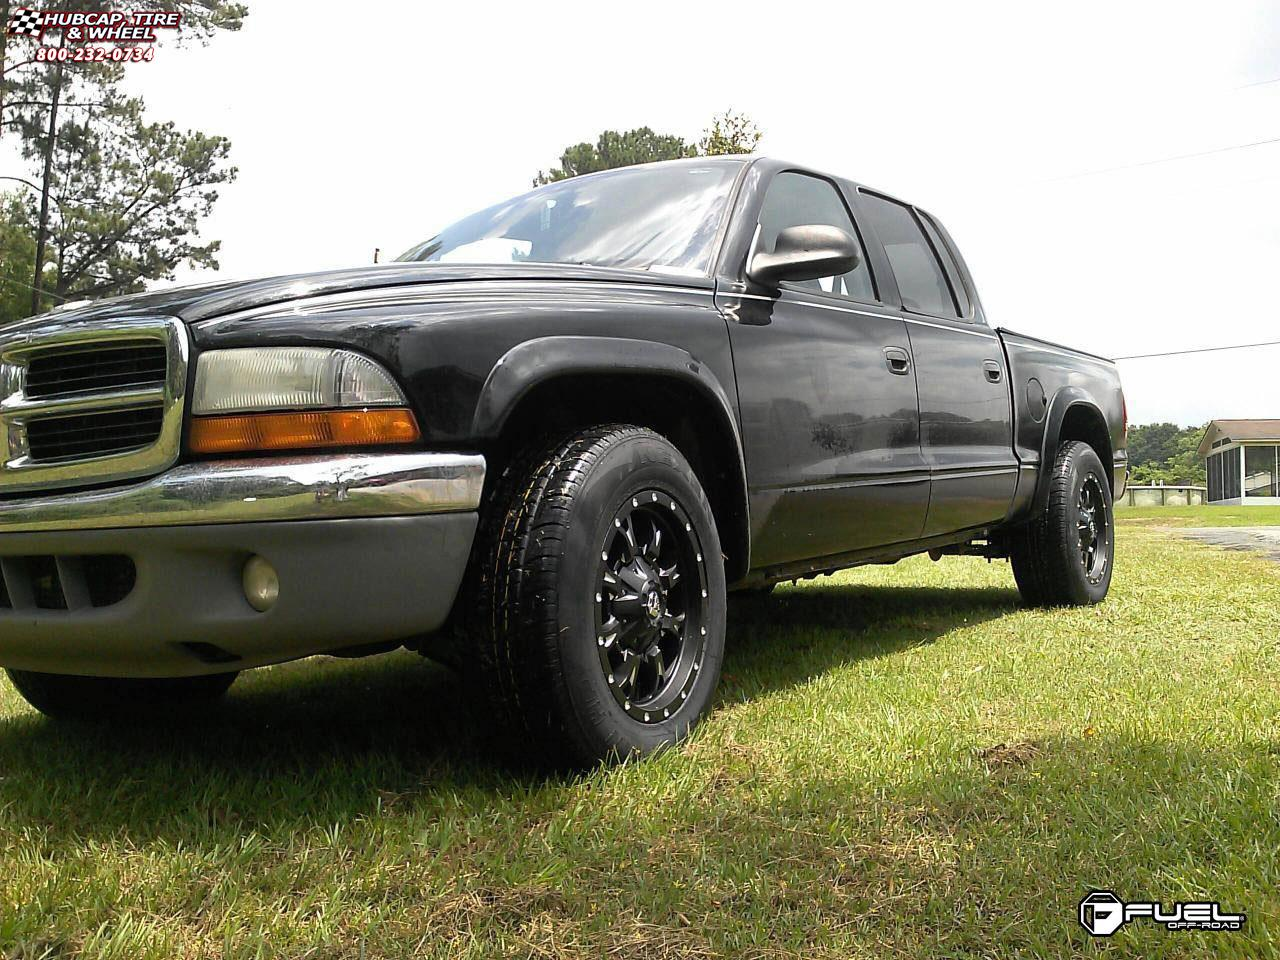 Dodge Dakota Fuel Krank D517 Wheels Matte Black & Milled